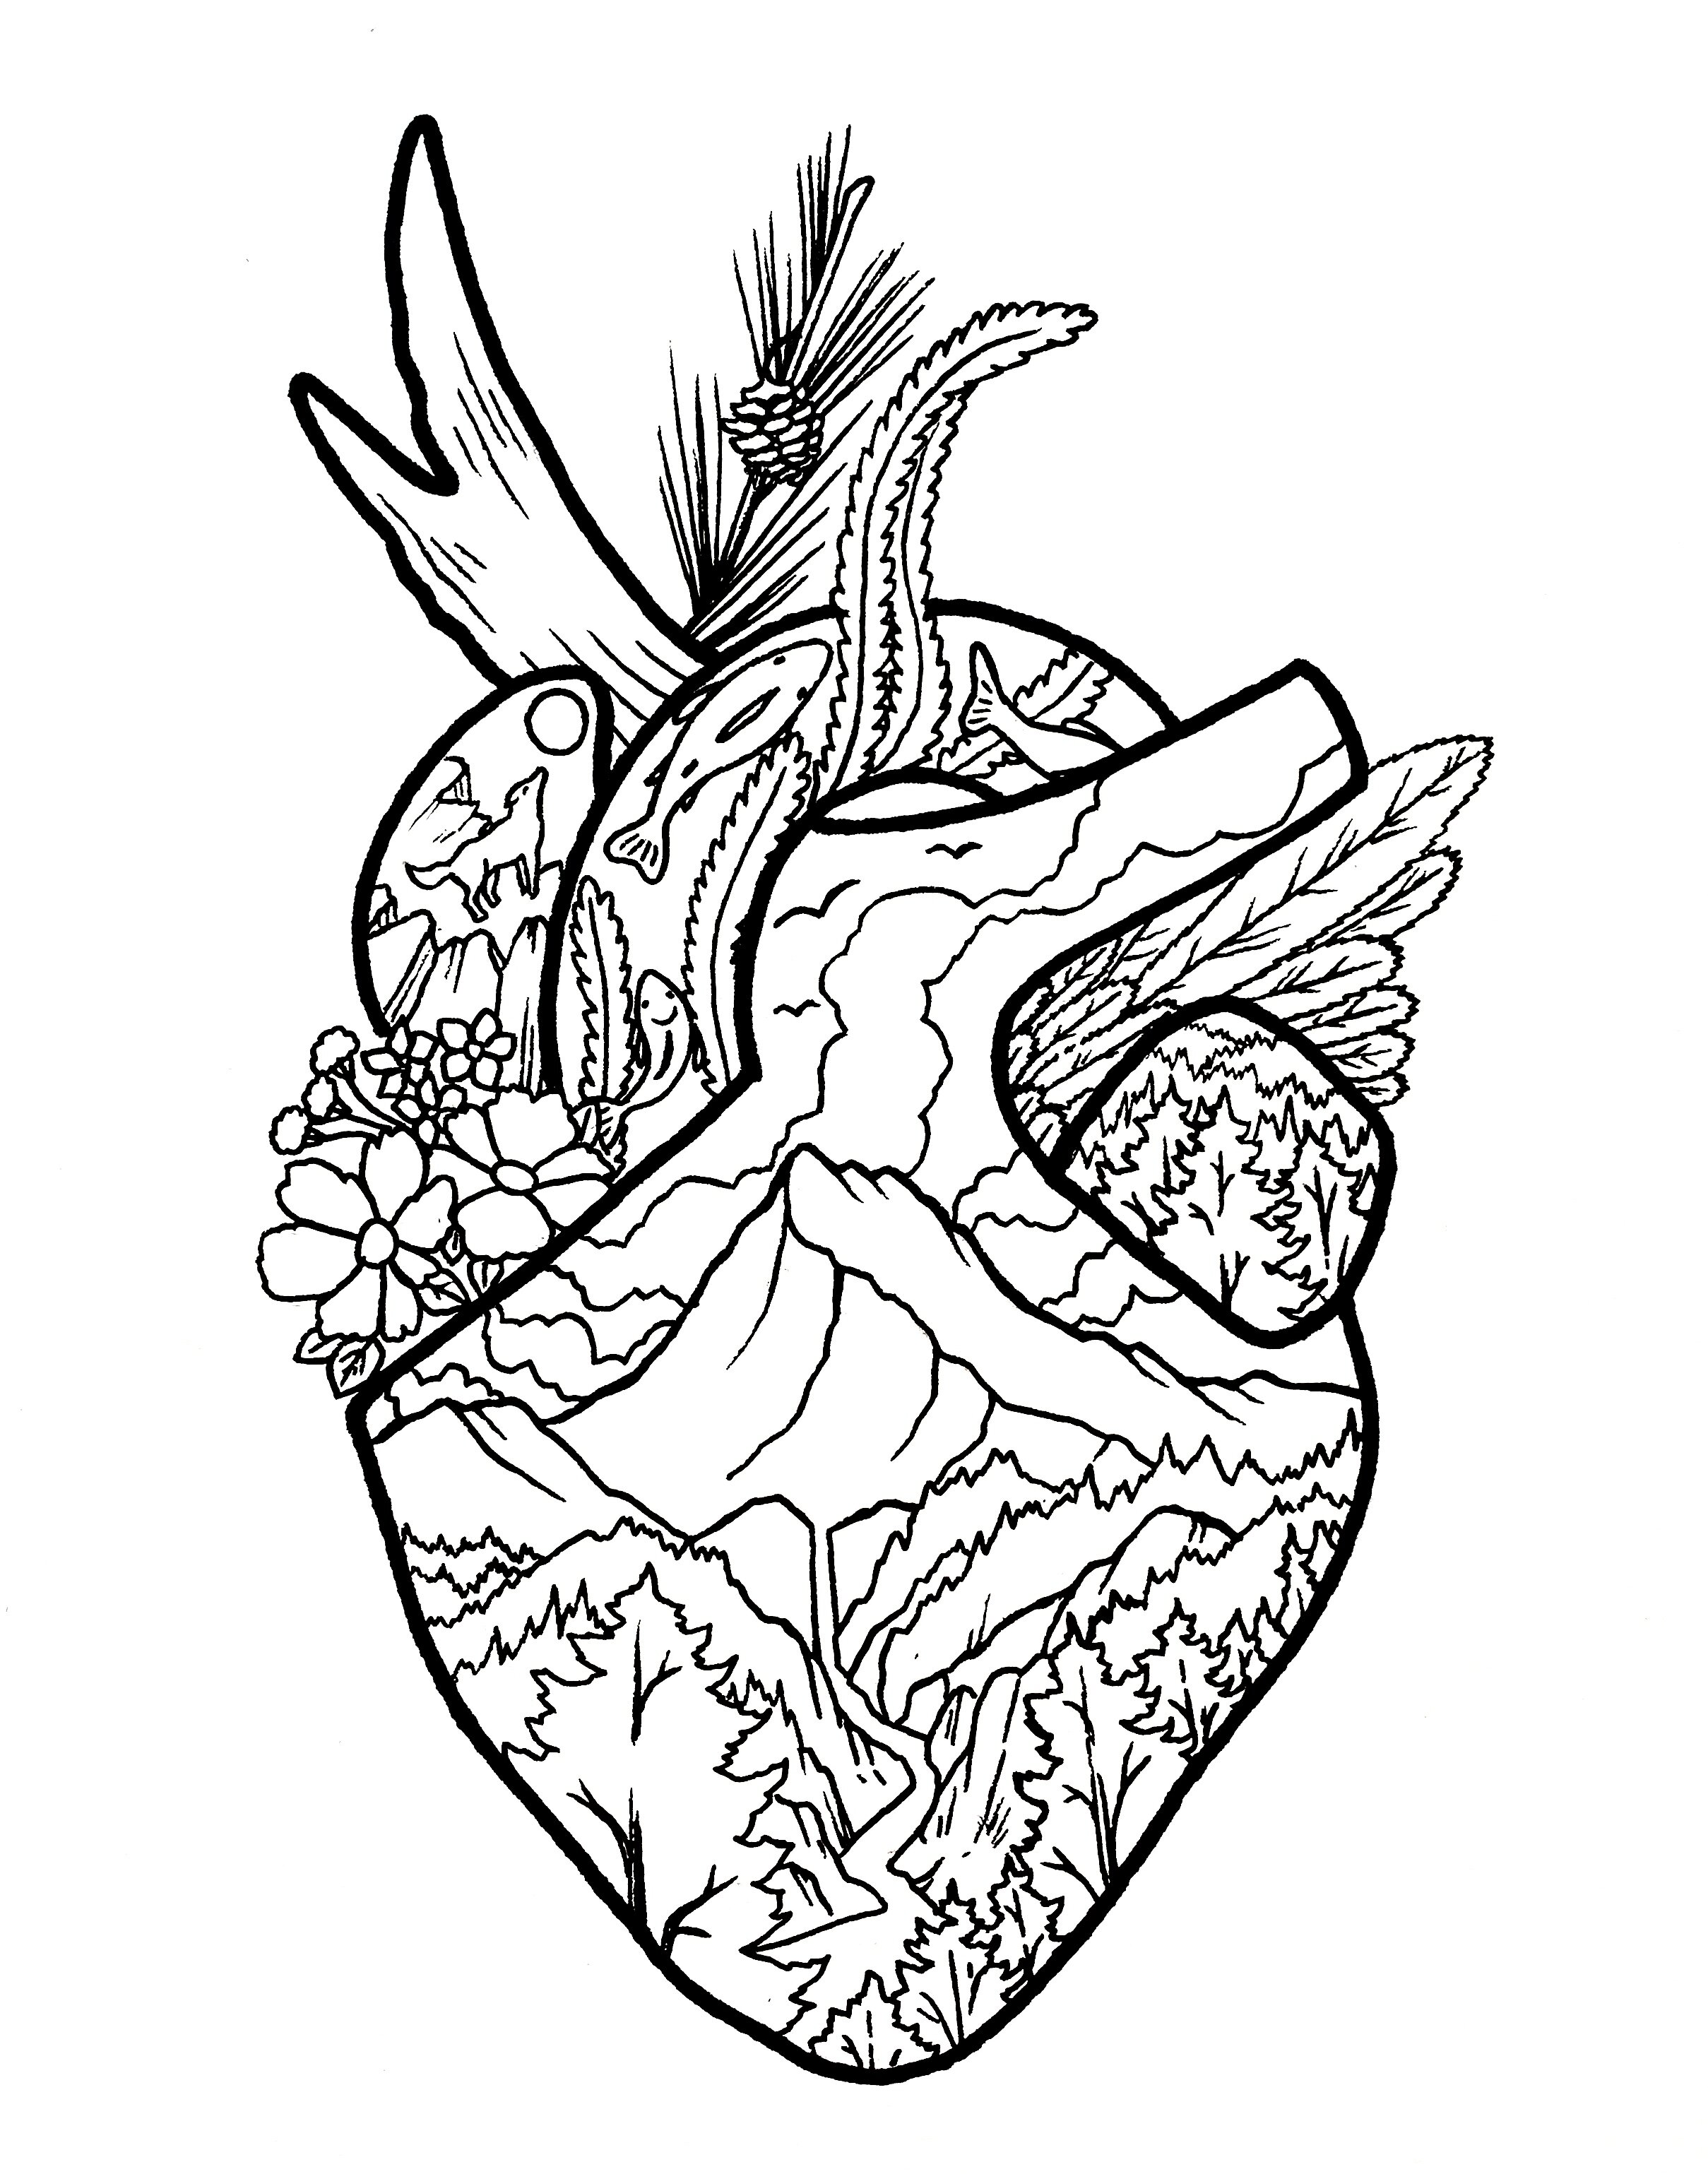 Advanced Coloring Pages Wild At Heart A Million Tiny Lines